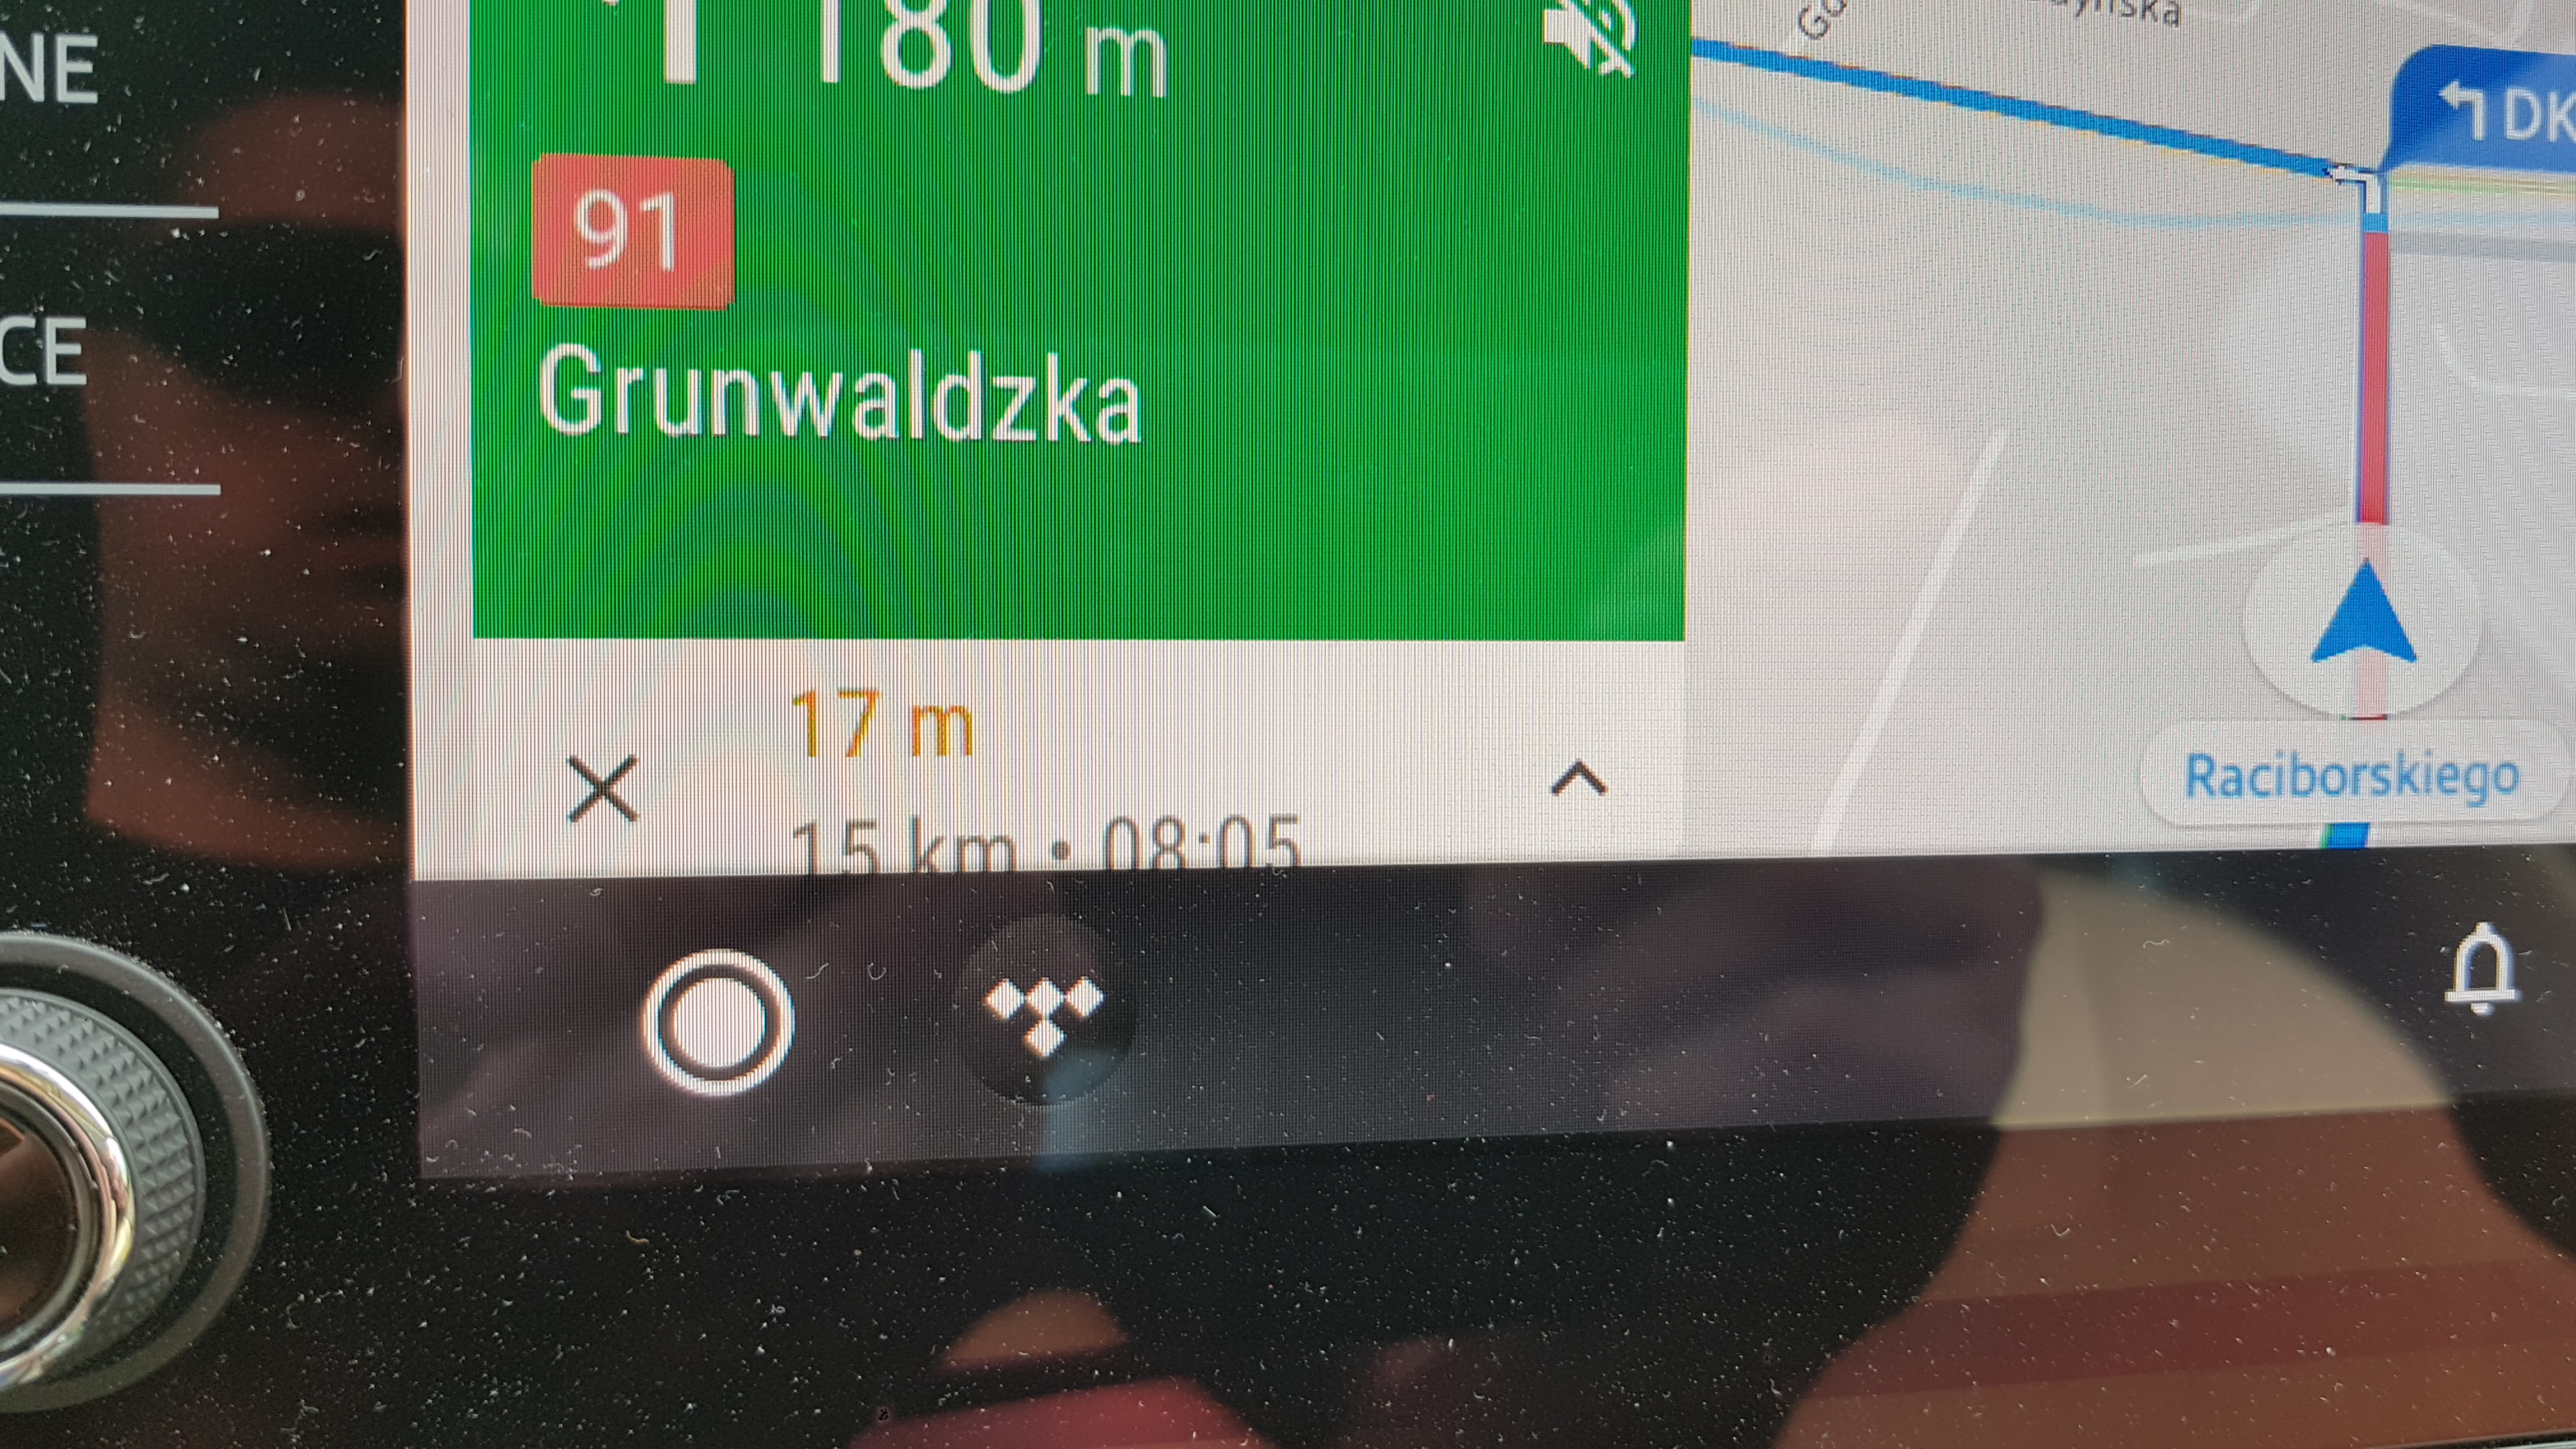 Display bug using Google maps with the new aa layout - Android Auto Help